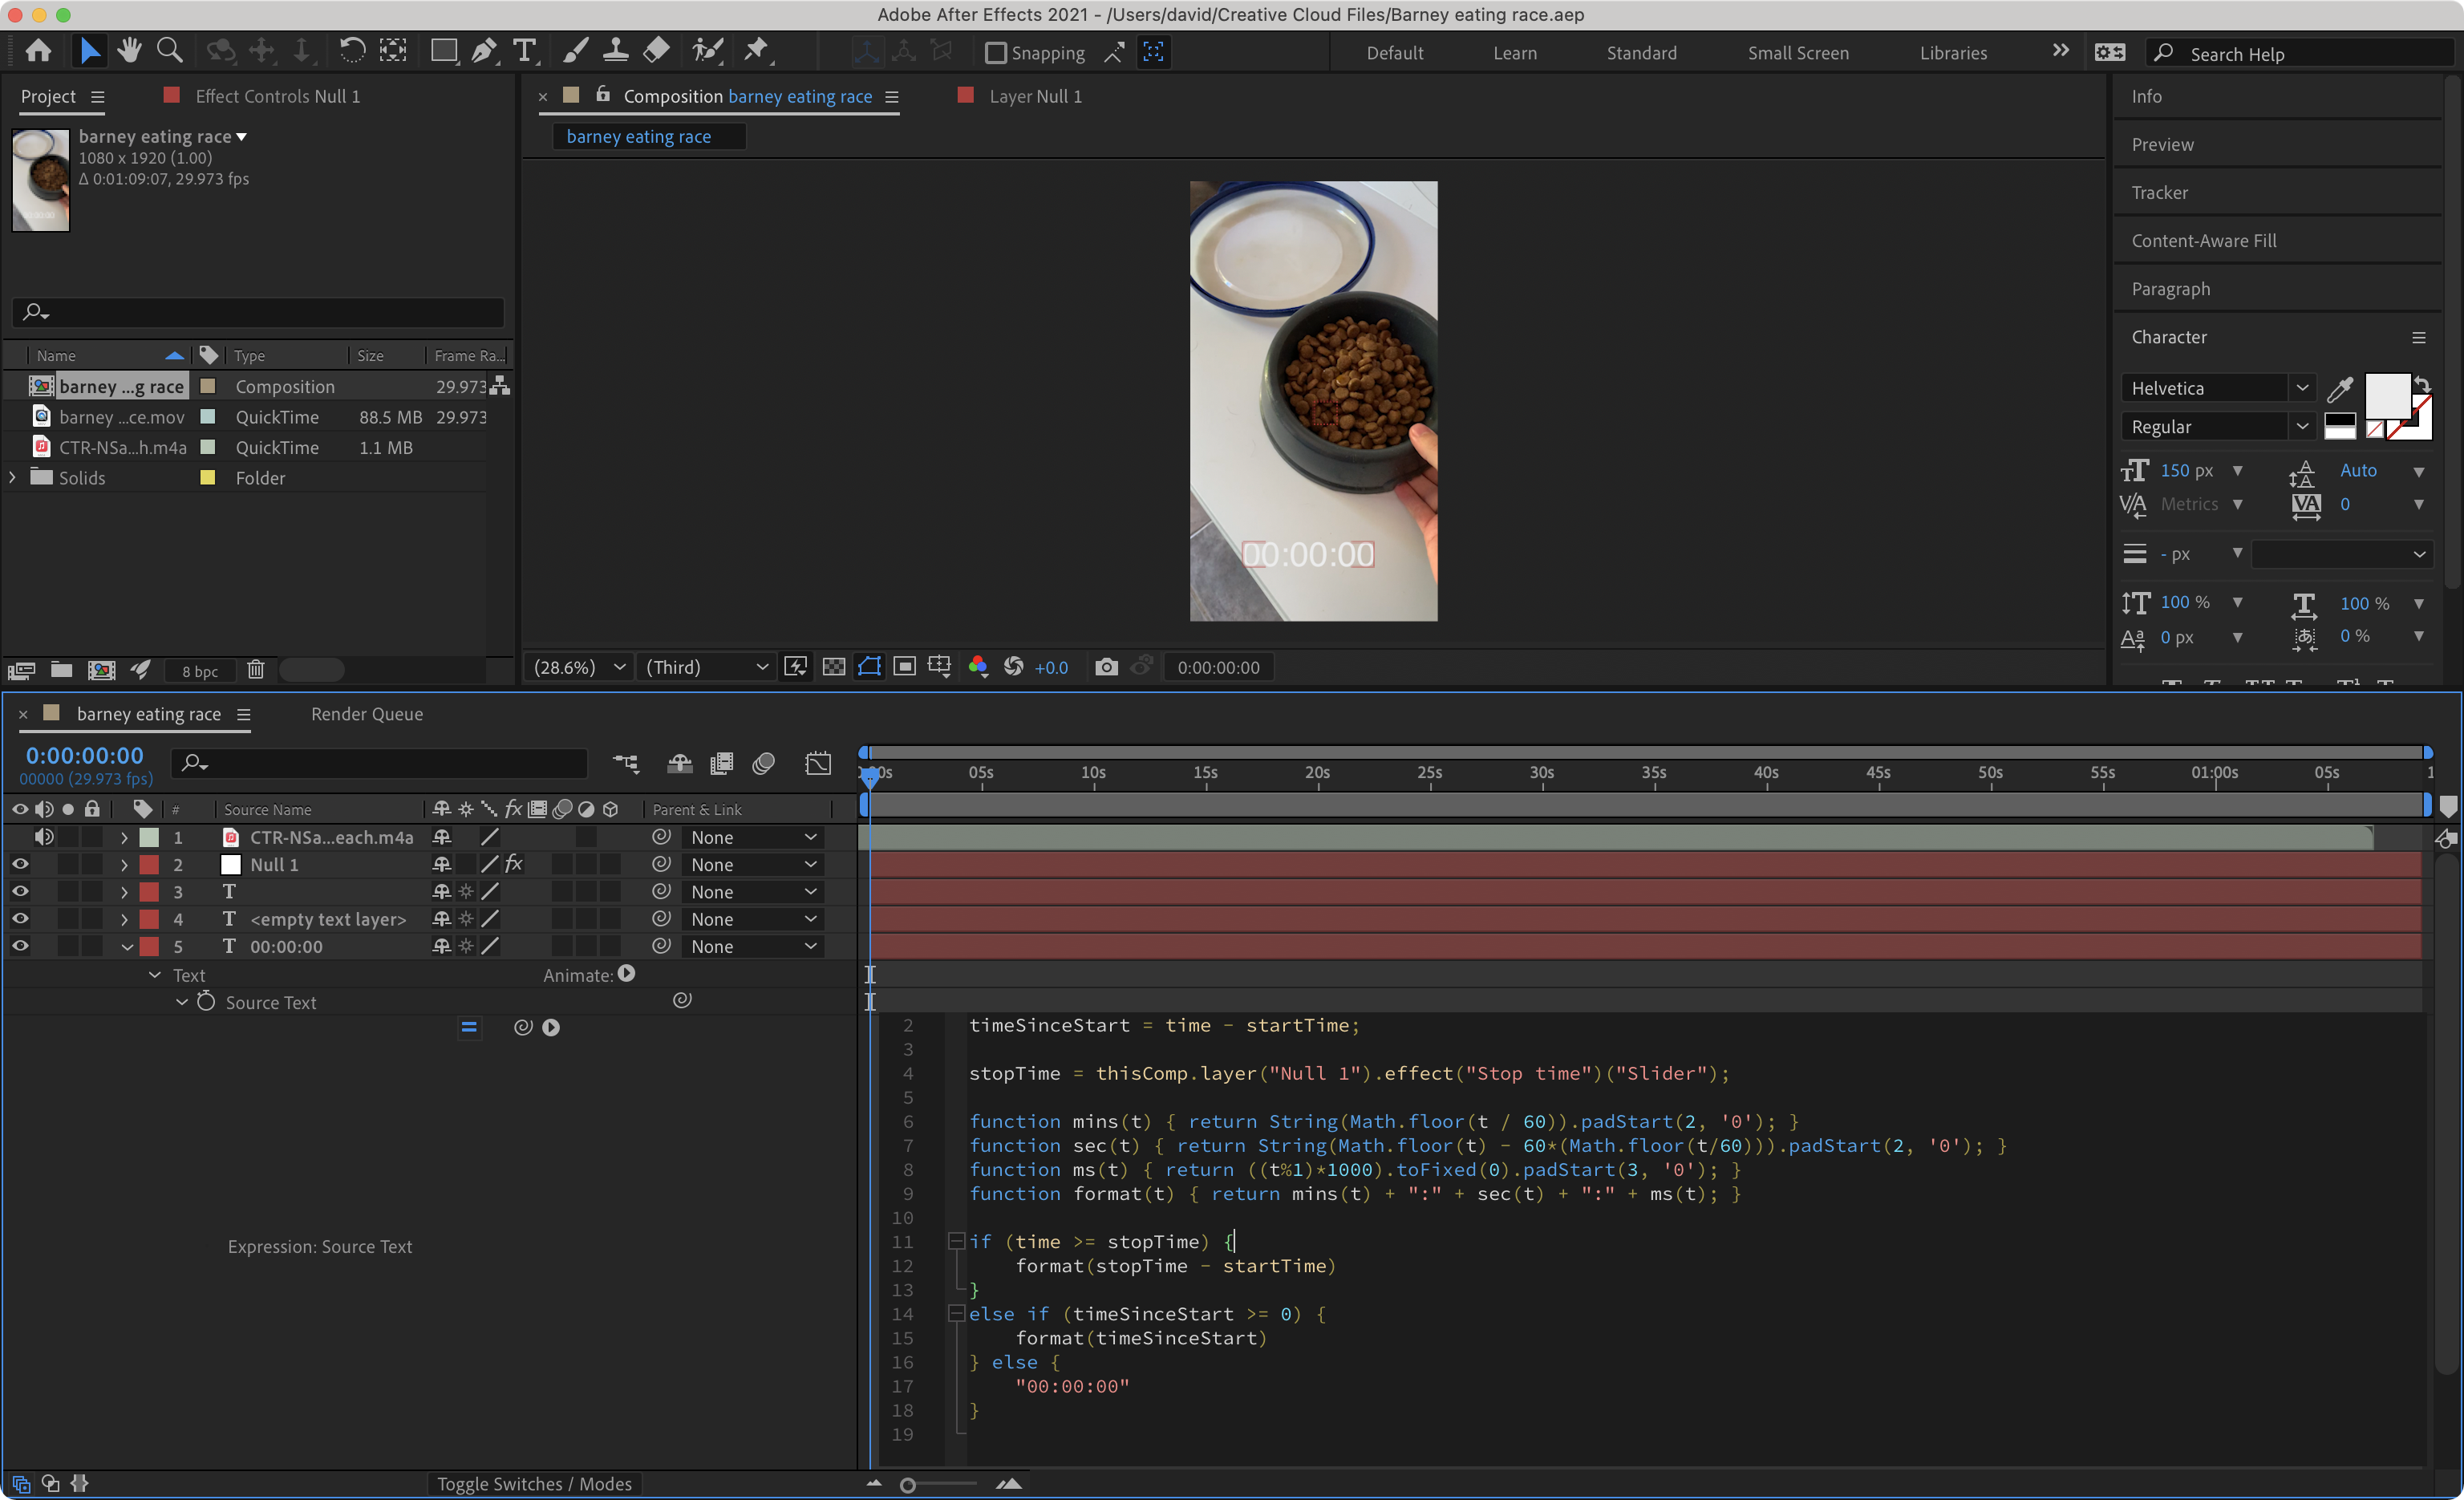 Screenshot of the Adobe After Effects workspace used for this project.